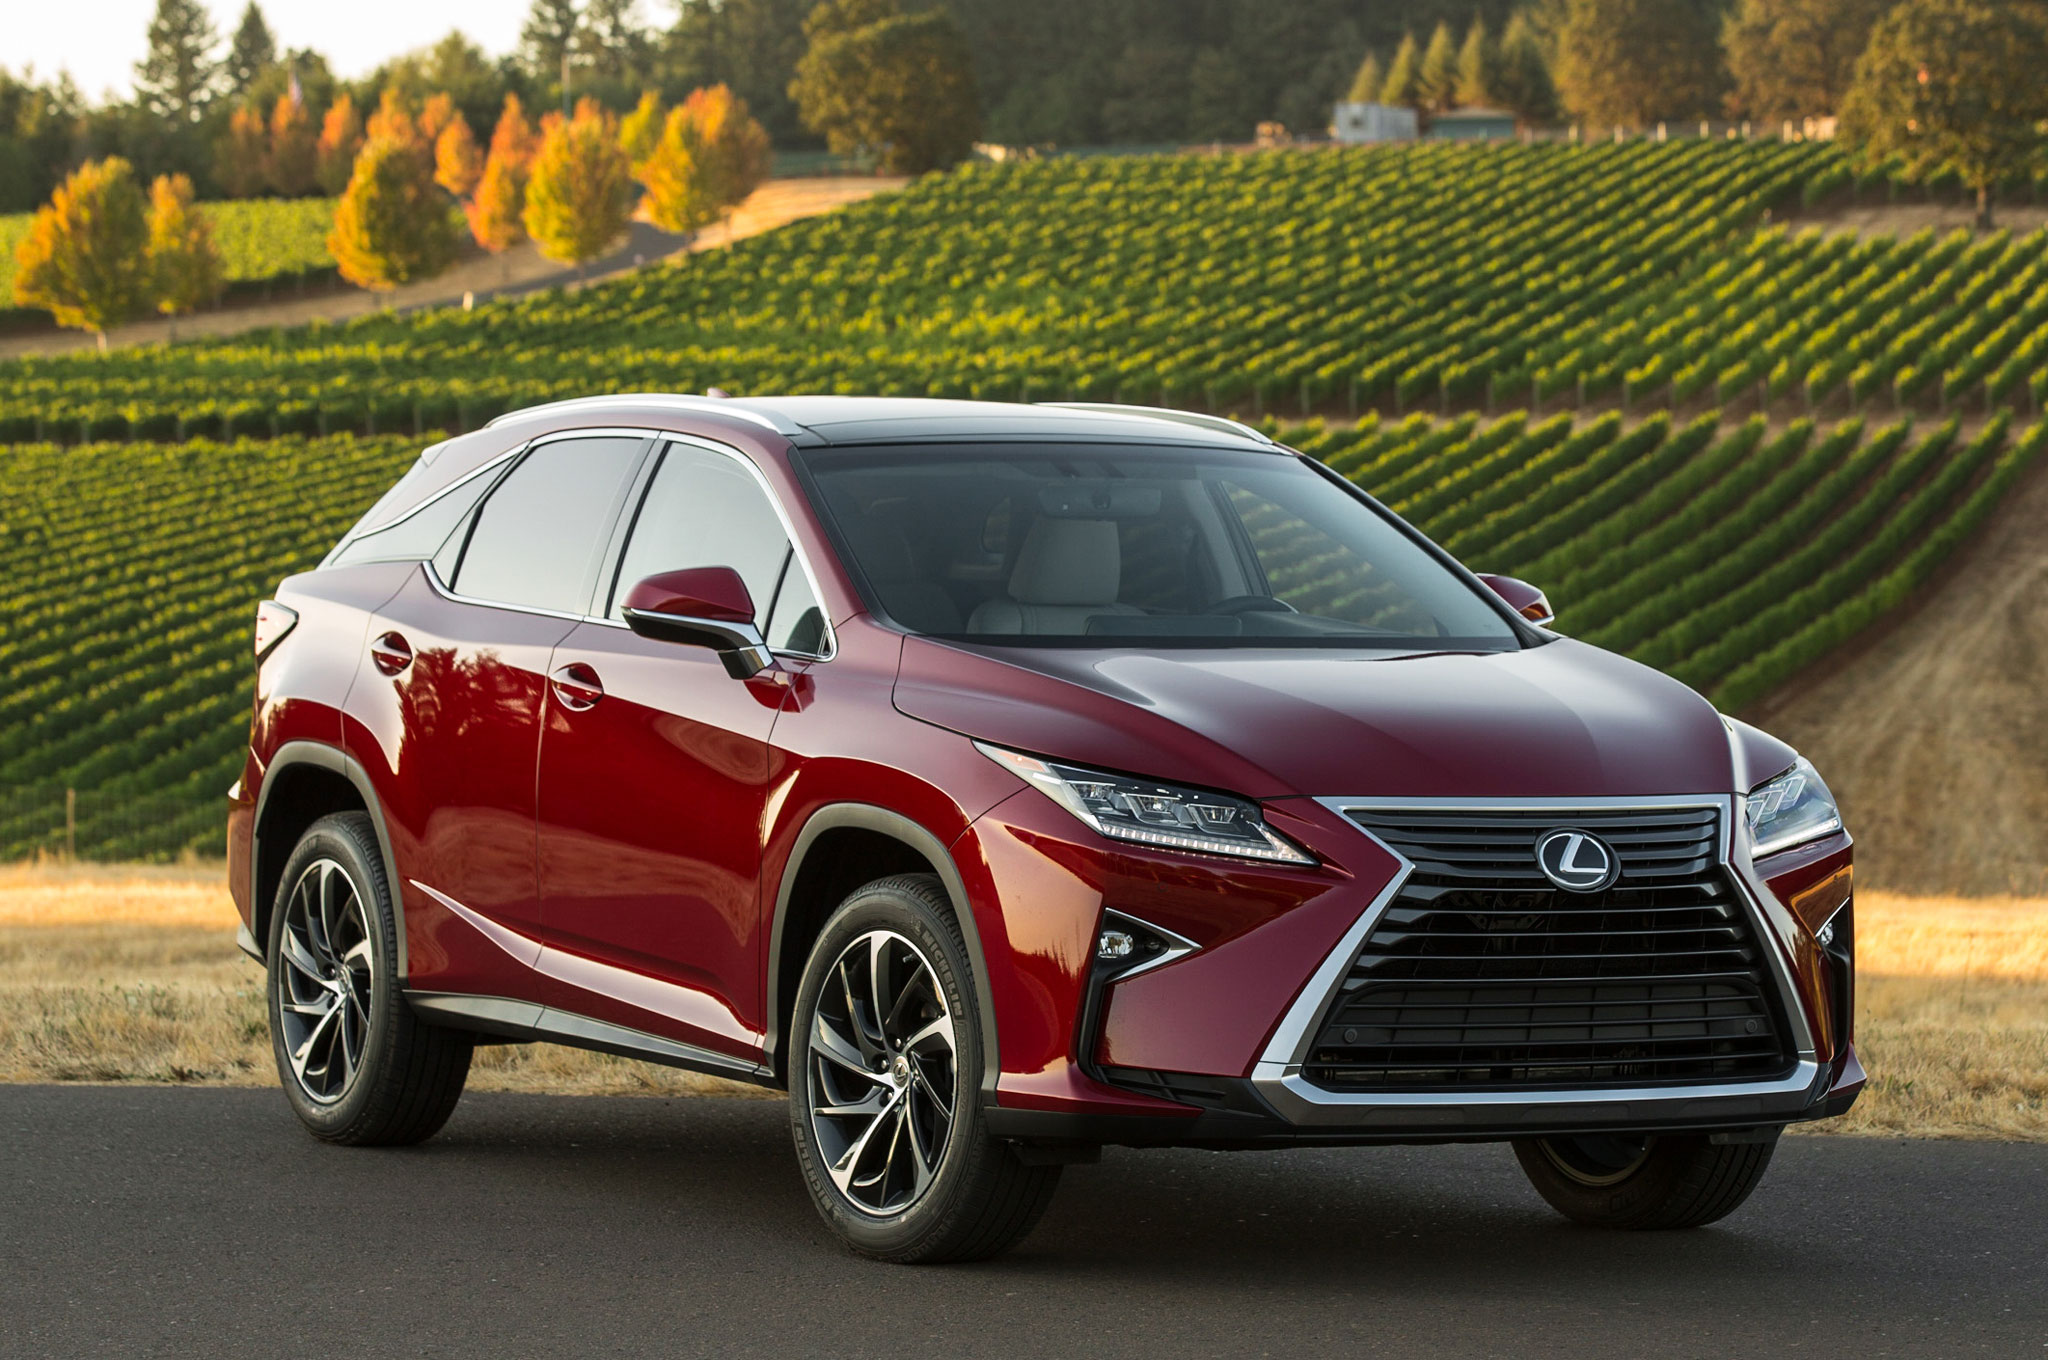 2016 lexus rx review show more sciox Gallery